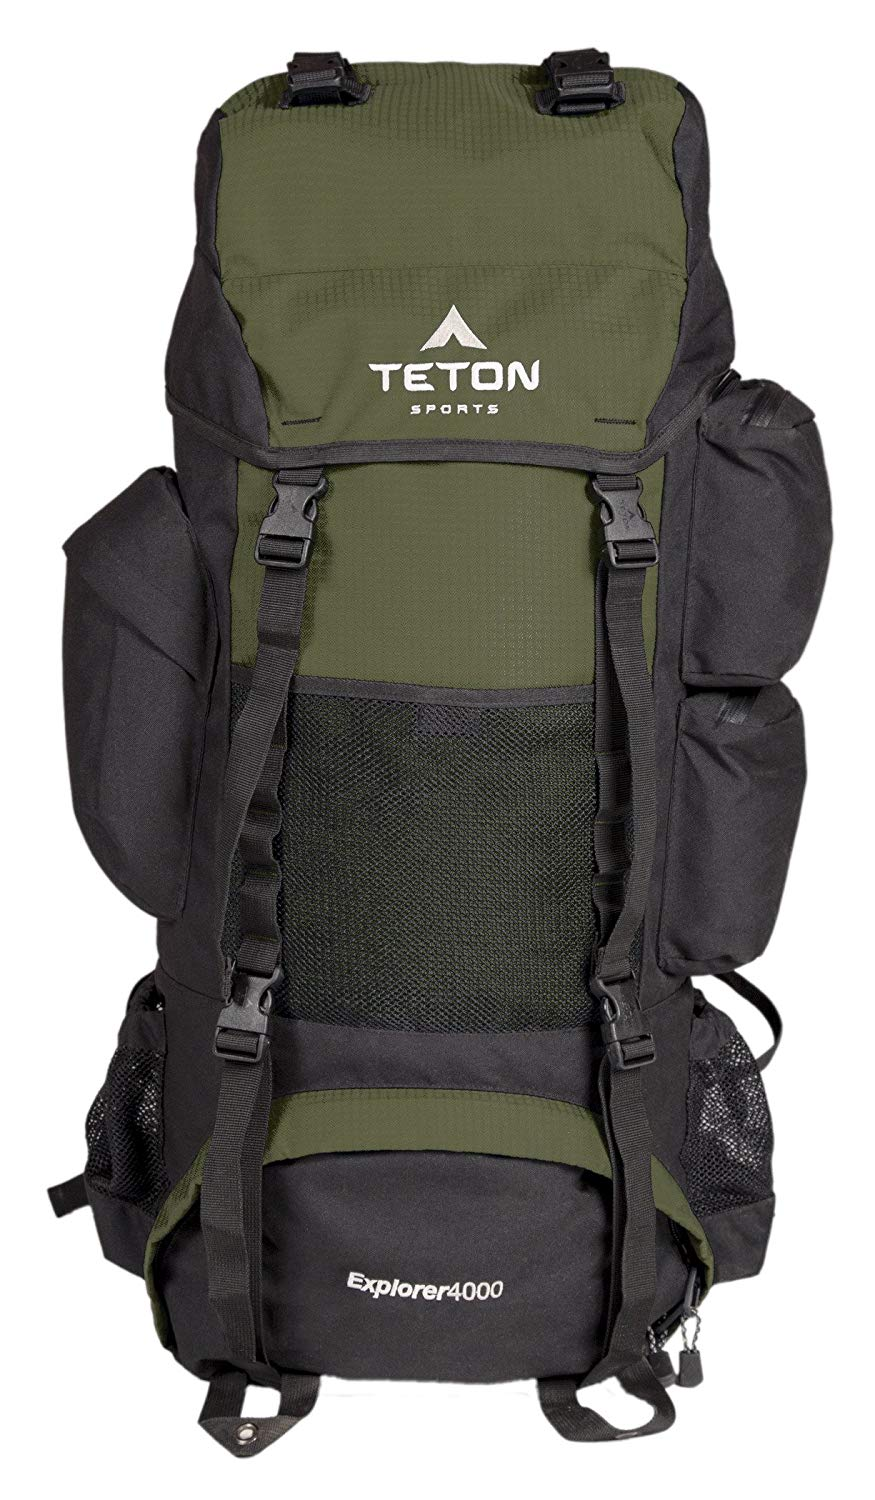 Teton Sports Explorer 4000 Internal Frame Backpack – Not Your Basic Backpack; High-Performance Backpack for Backpacking, Hiking, Camping; Sewn-in Rain Cover